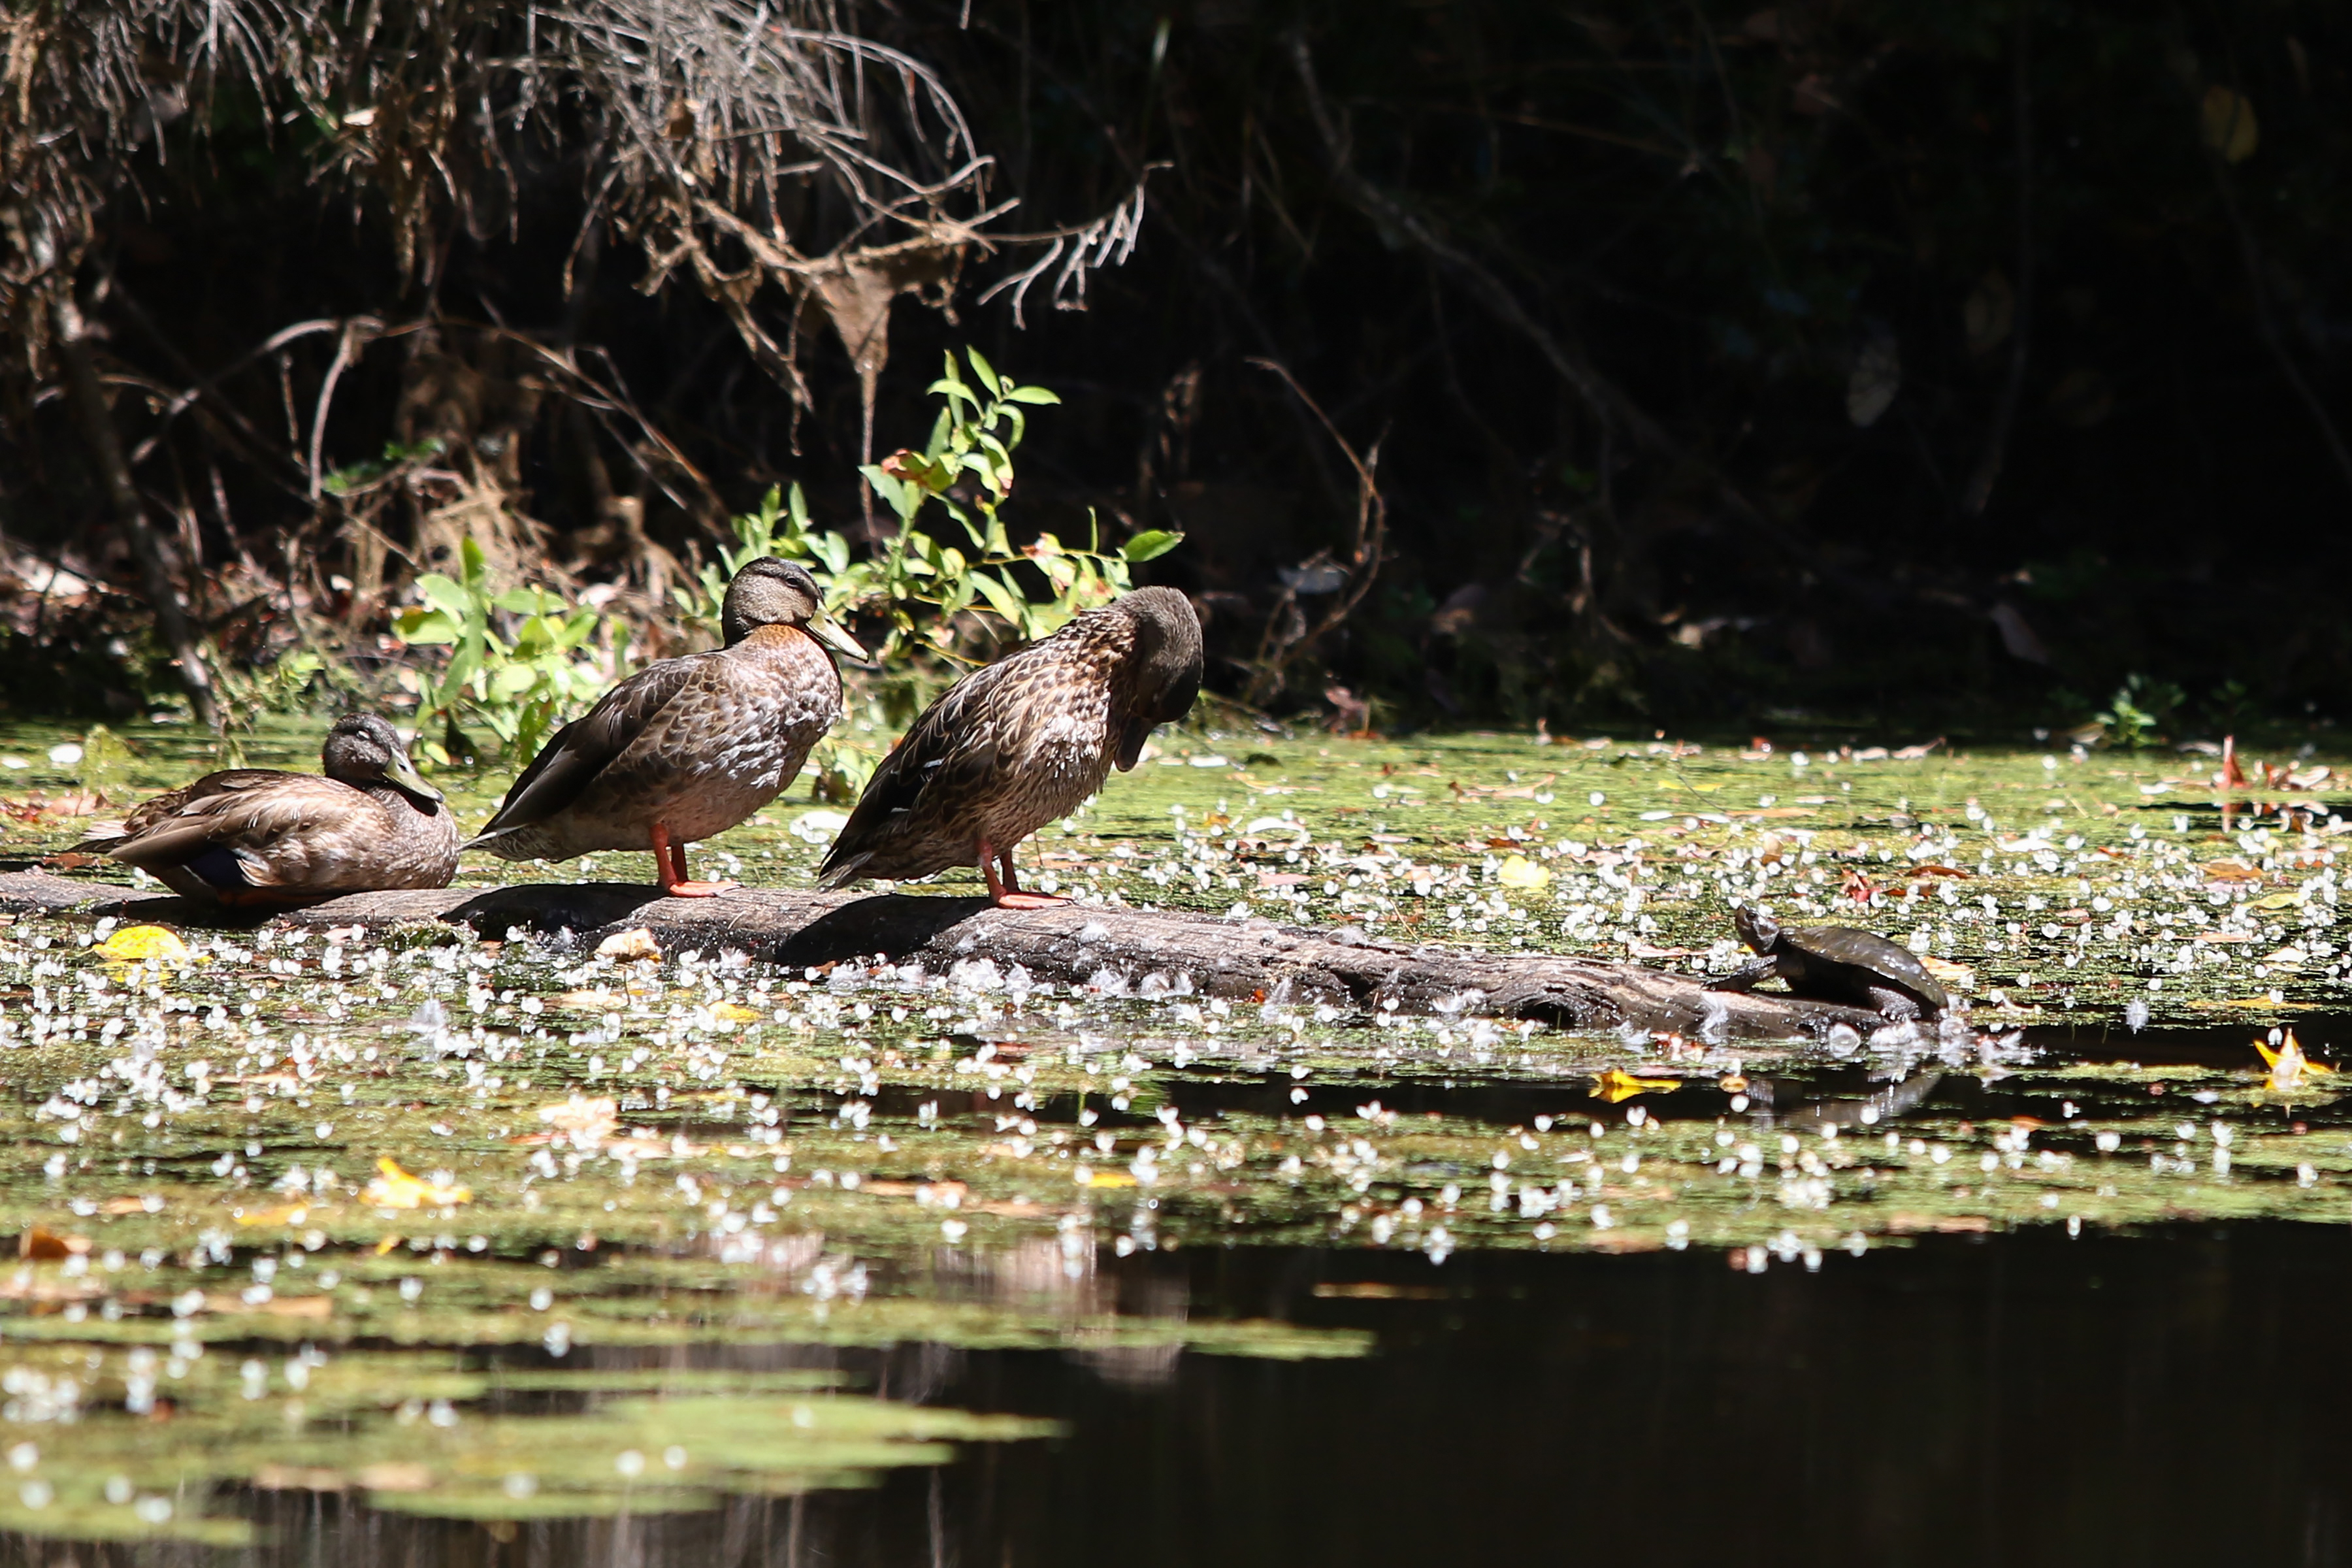 Ducks and a Turtle standing on a log in a bioswale.